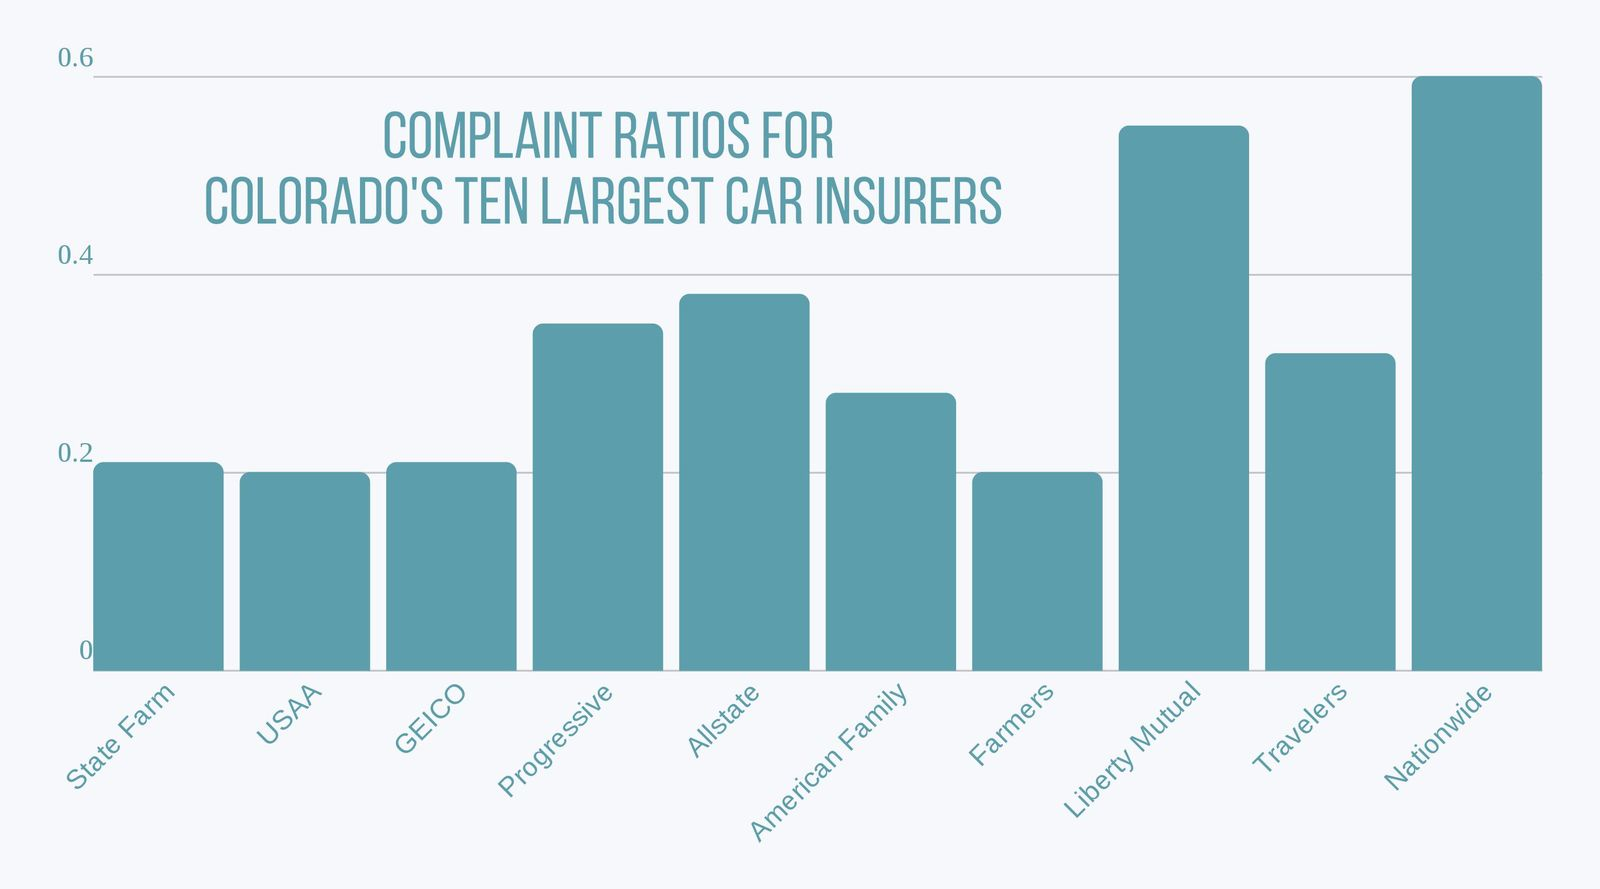 Bar chart of complaint ratios for Colorado's 10 largest car insurers